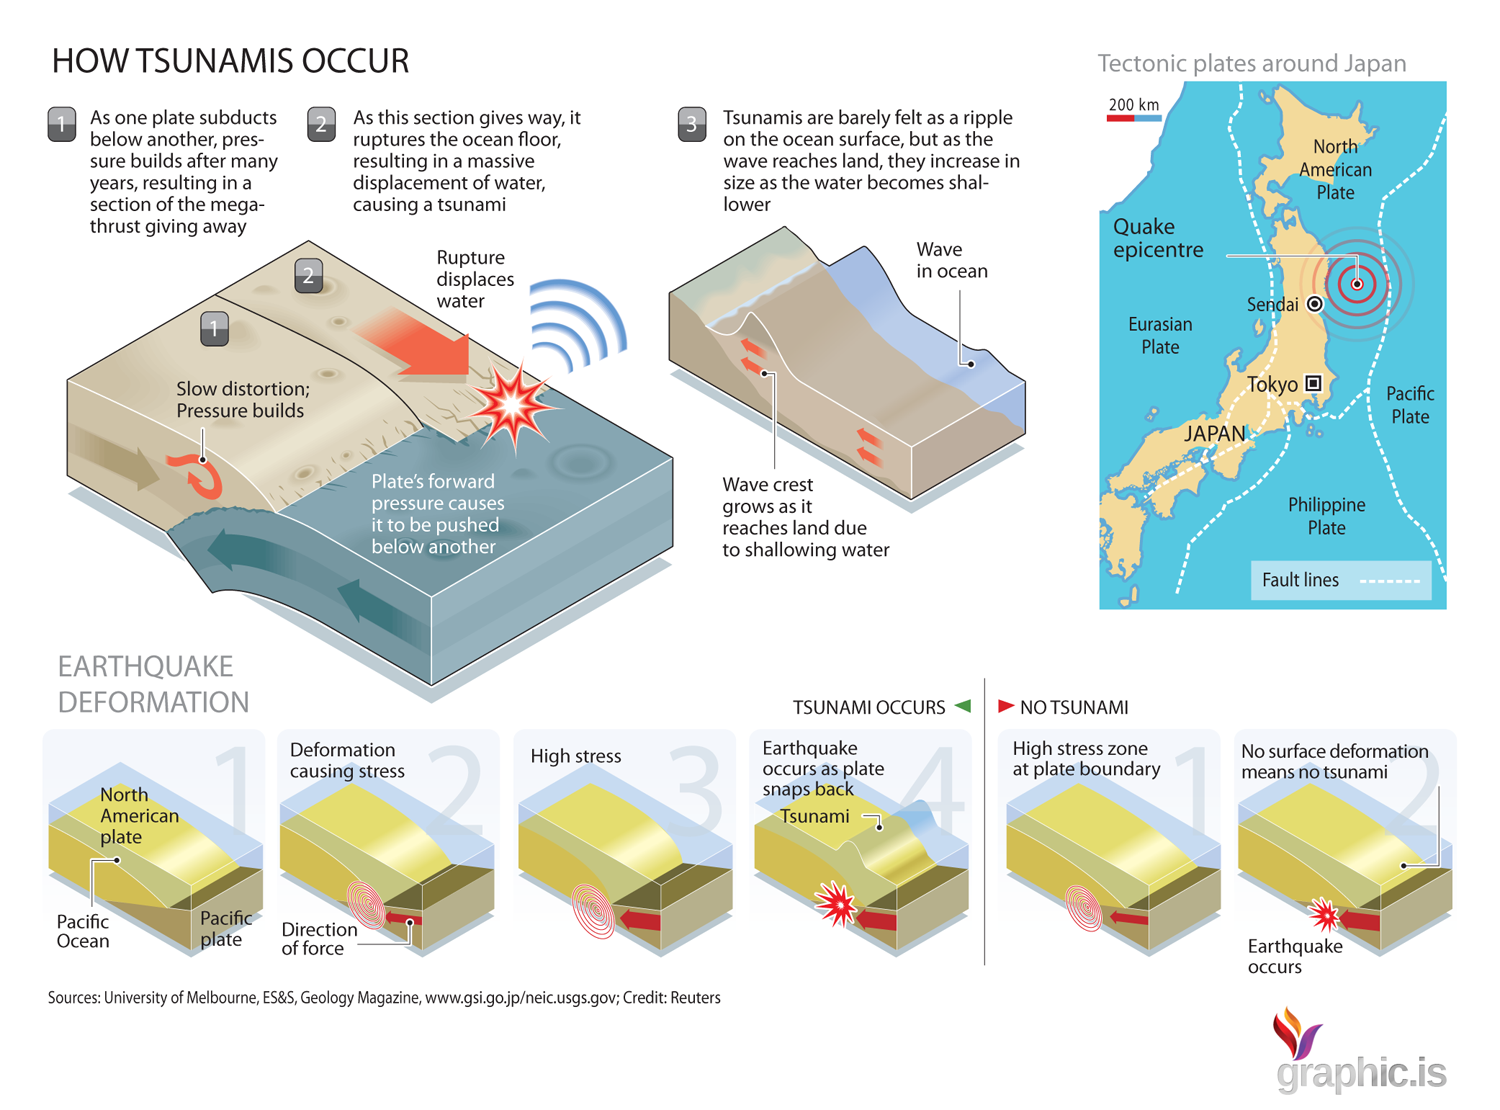 How Does a Tsunami Occur? | Visual.ly